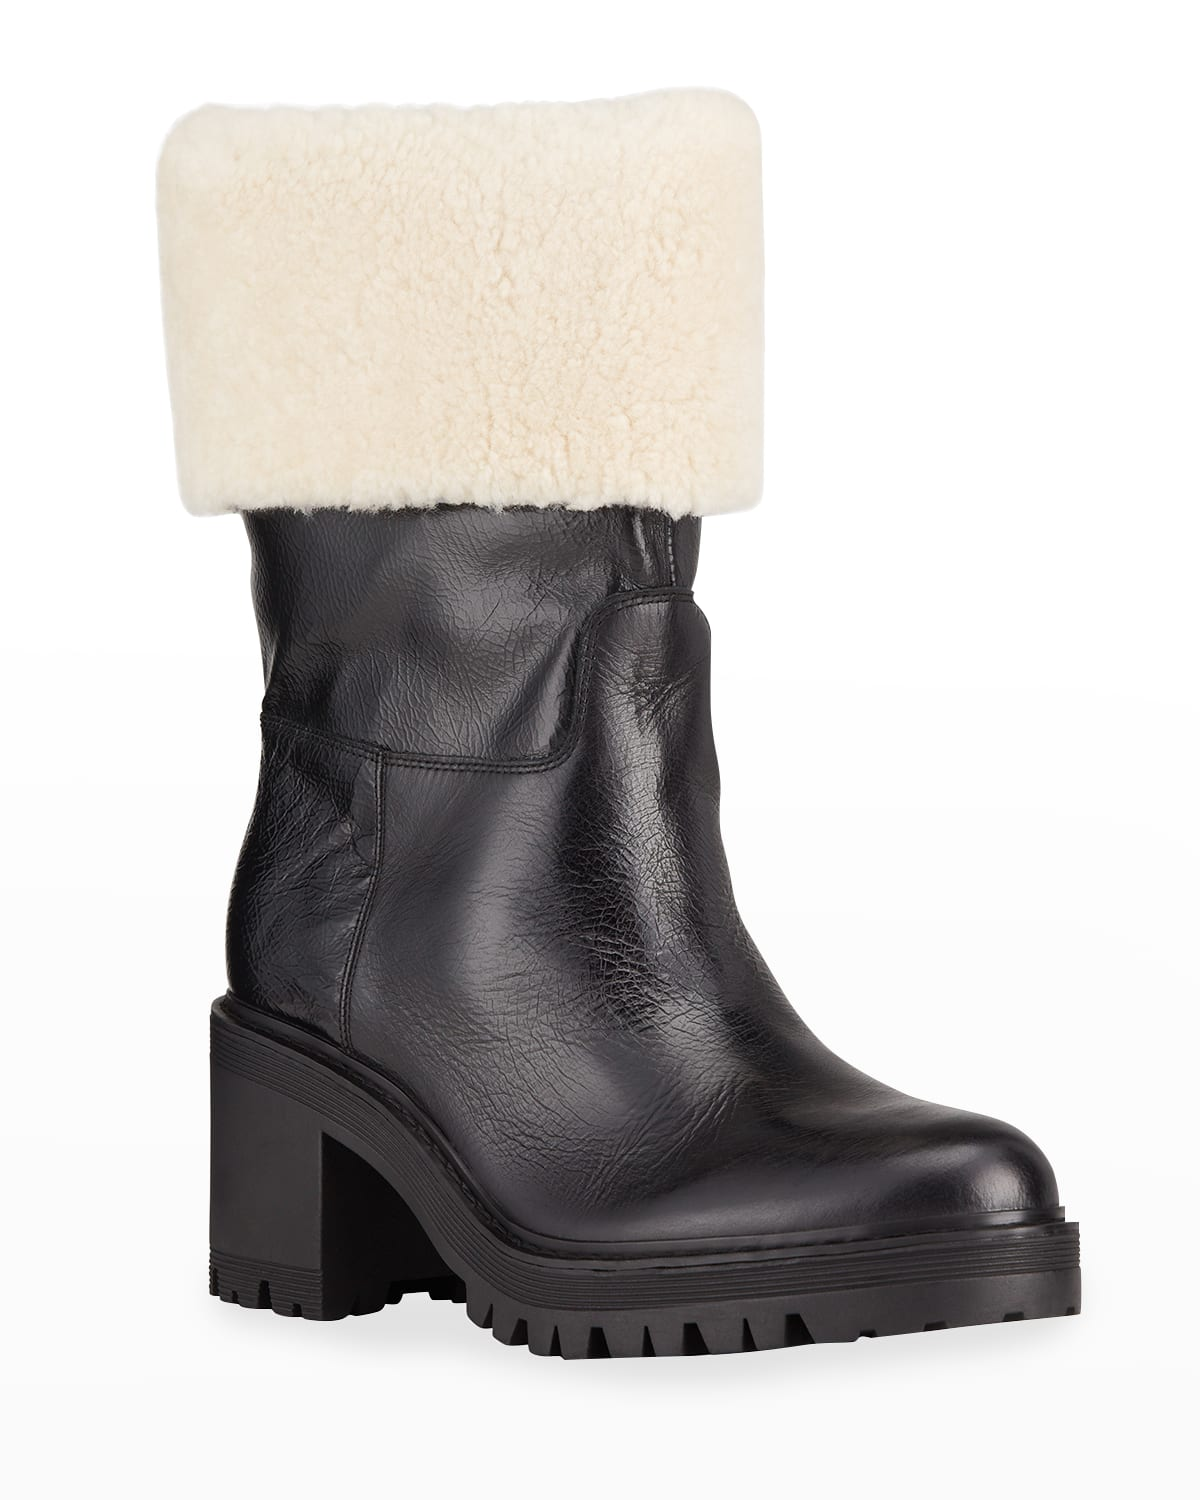 Willoele Leather Ankle Boots w/ Shearling Collar